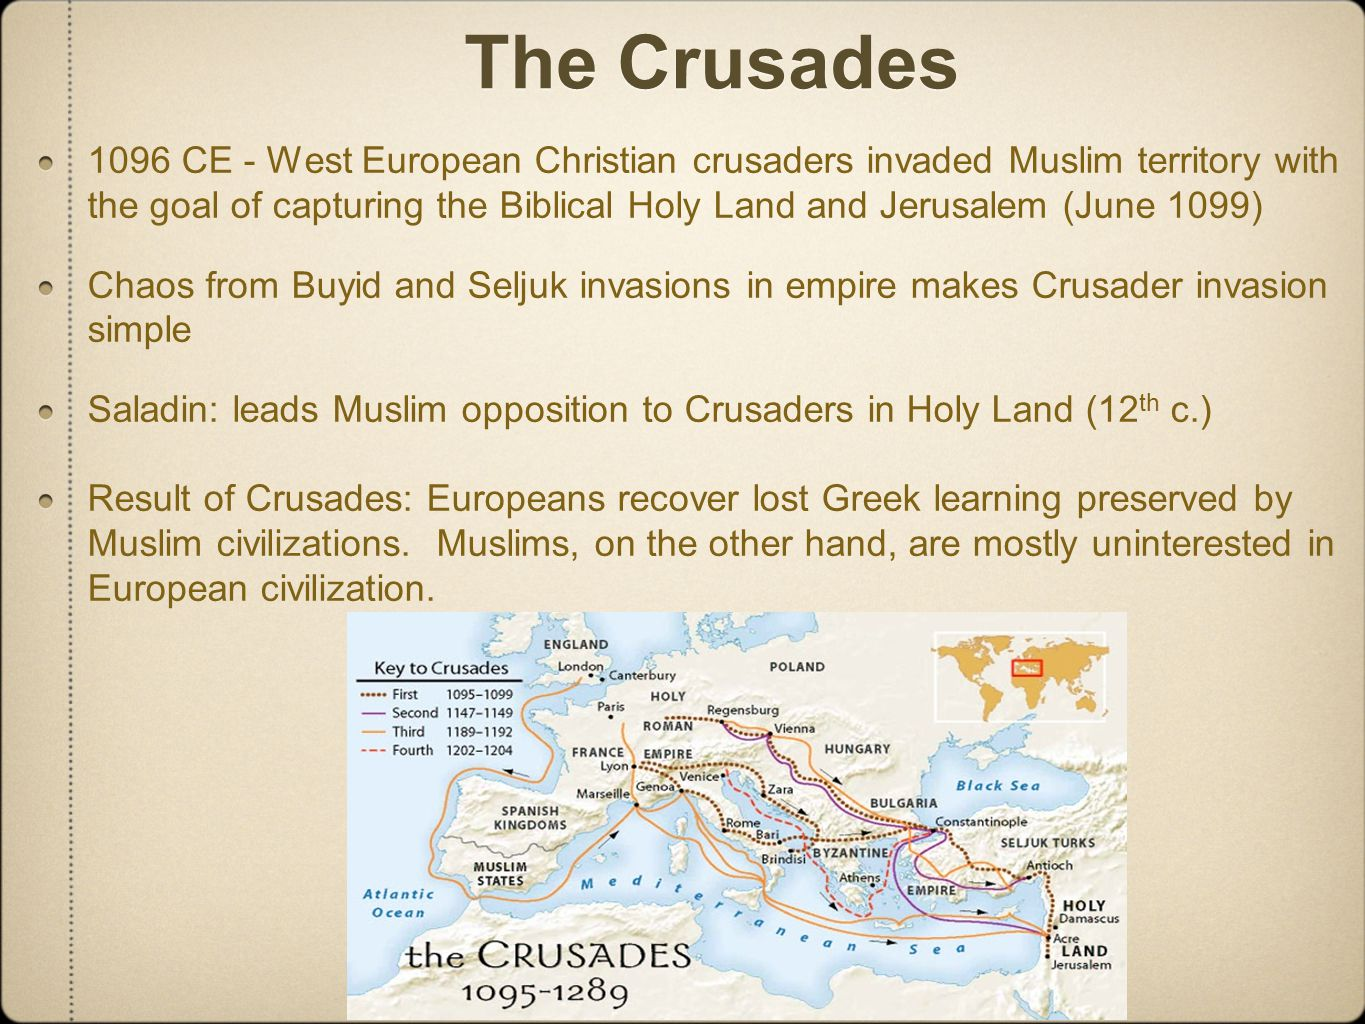 The Crusades 1096 CE - West European Christian crusaders invaded Muslim territory with the goal of capturing the Biblical Holy Land and Jerusalem (Jun